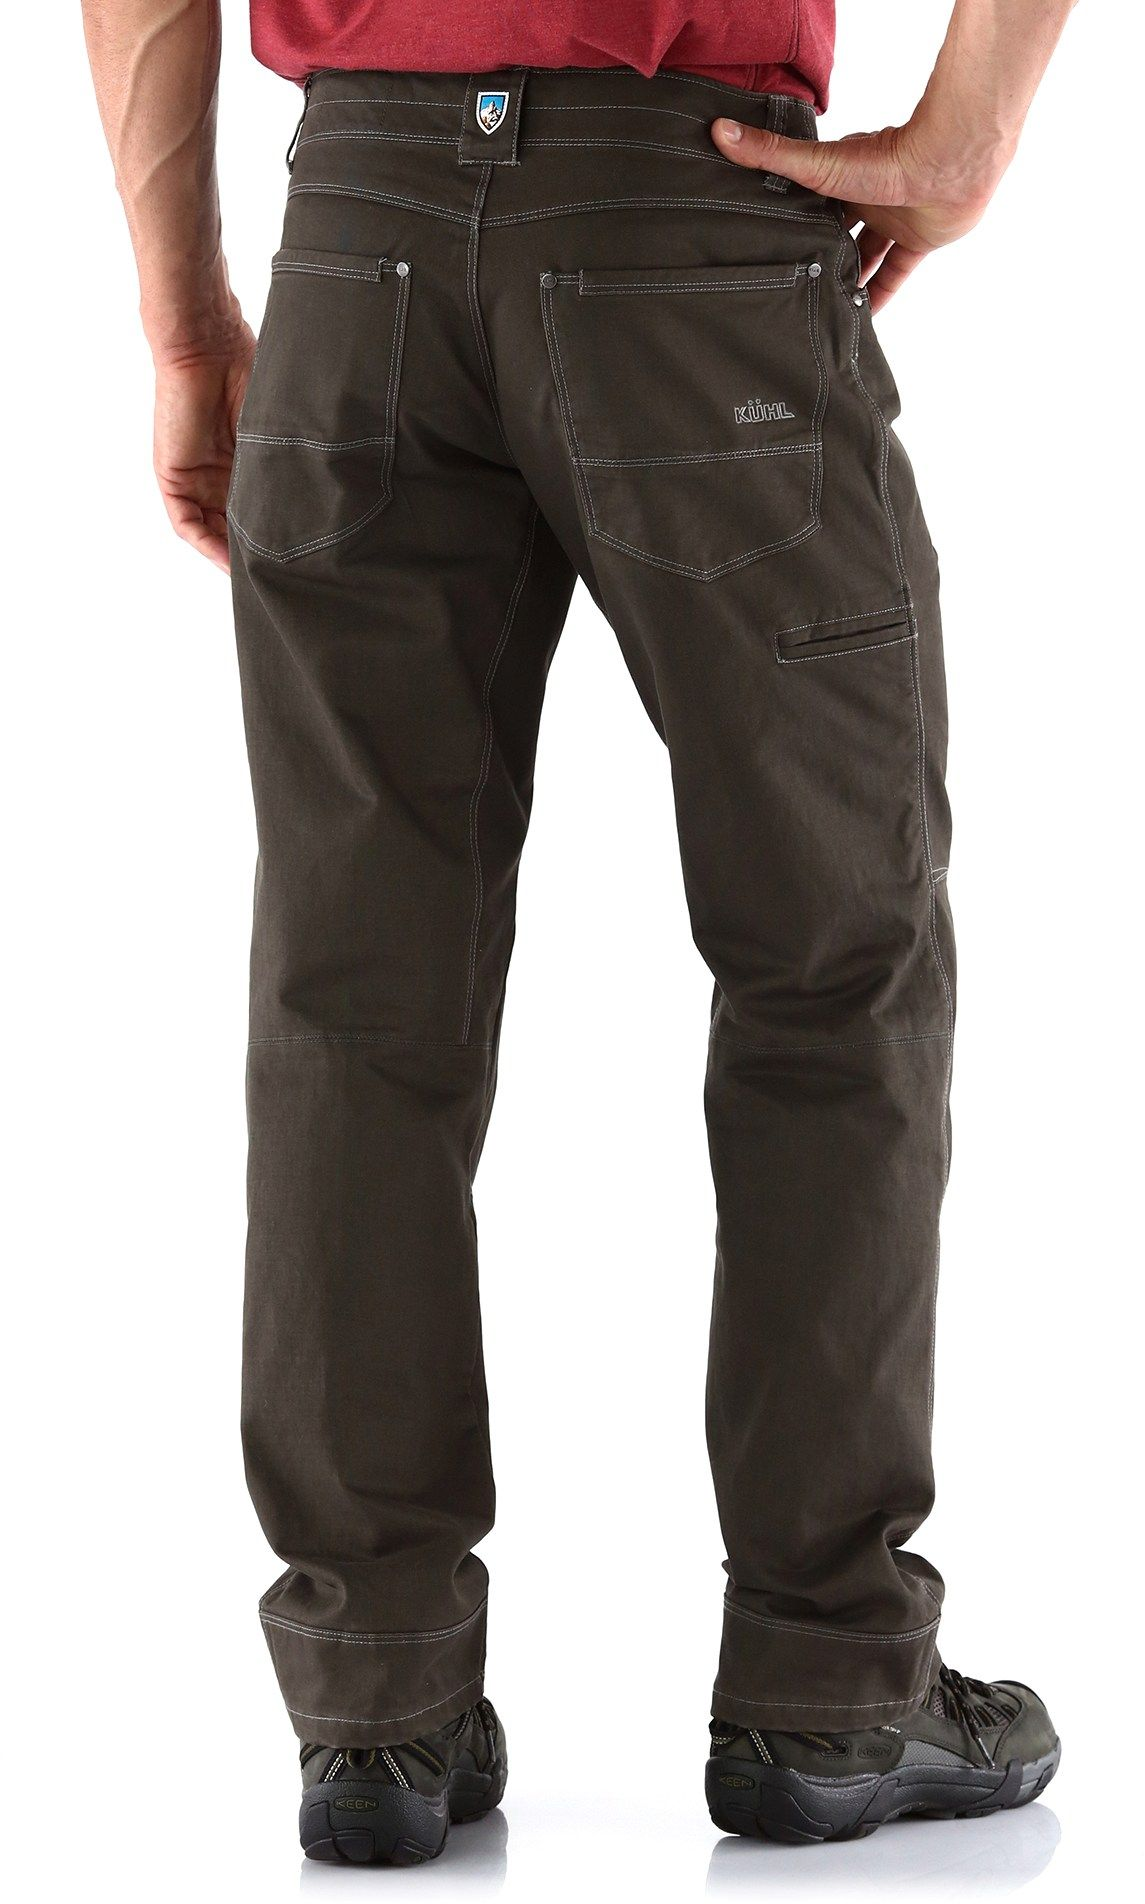 Pounding nails, chopping wood or walking the dog? These Kuhl Rydr Pants  bring a